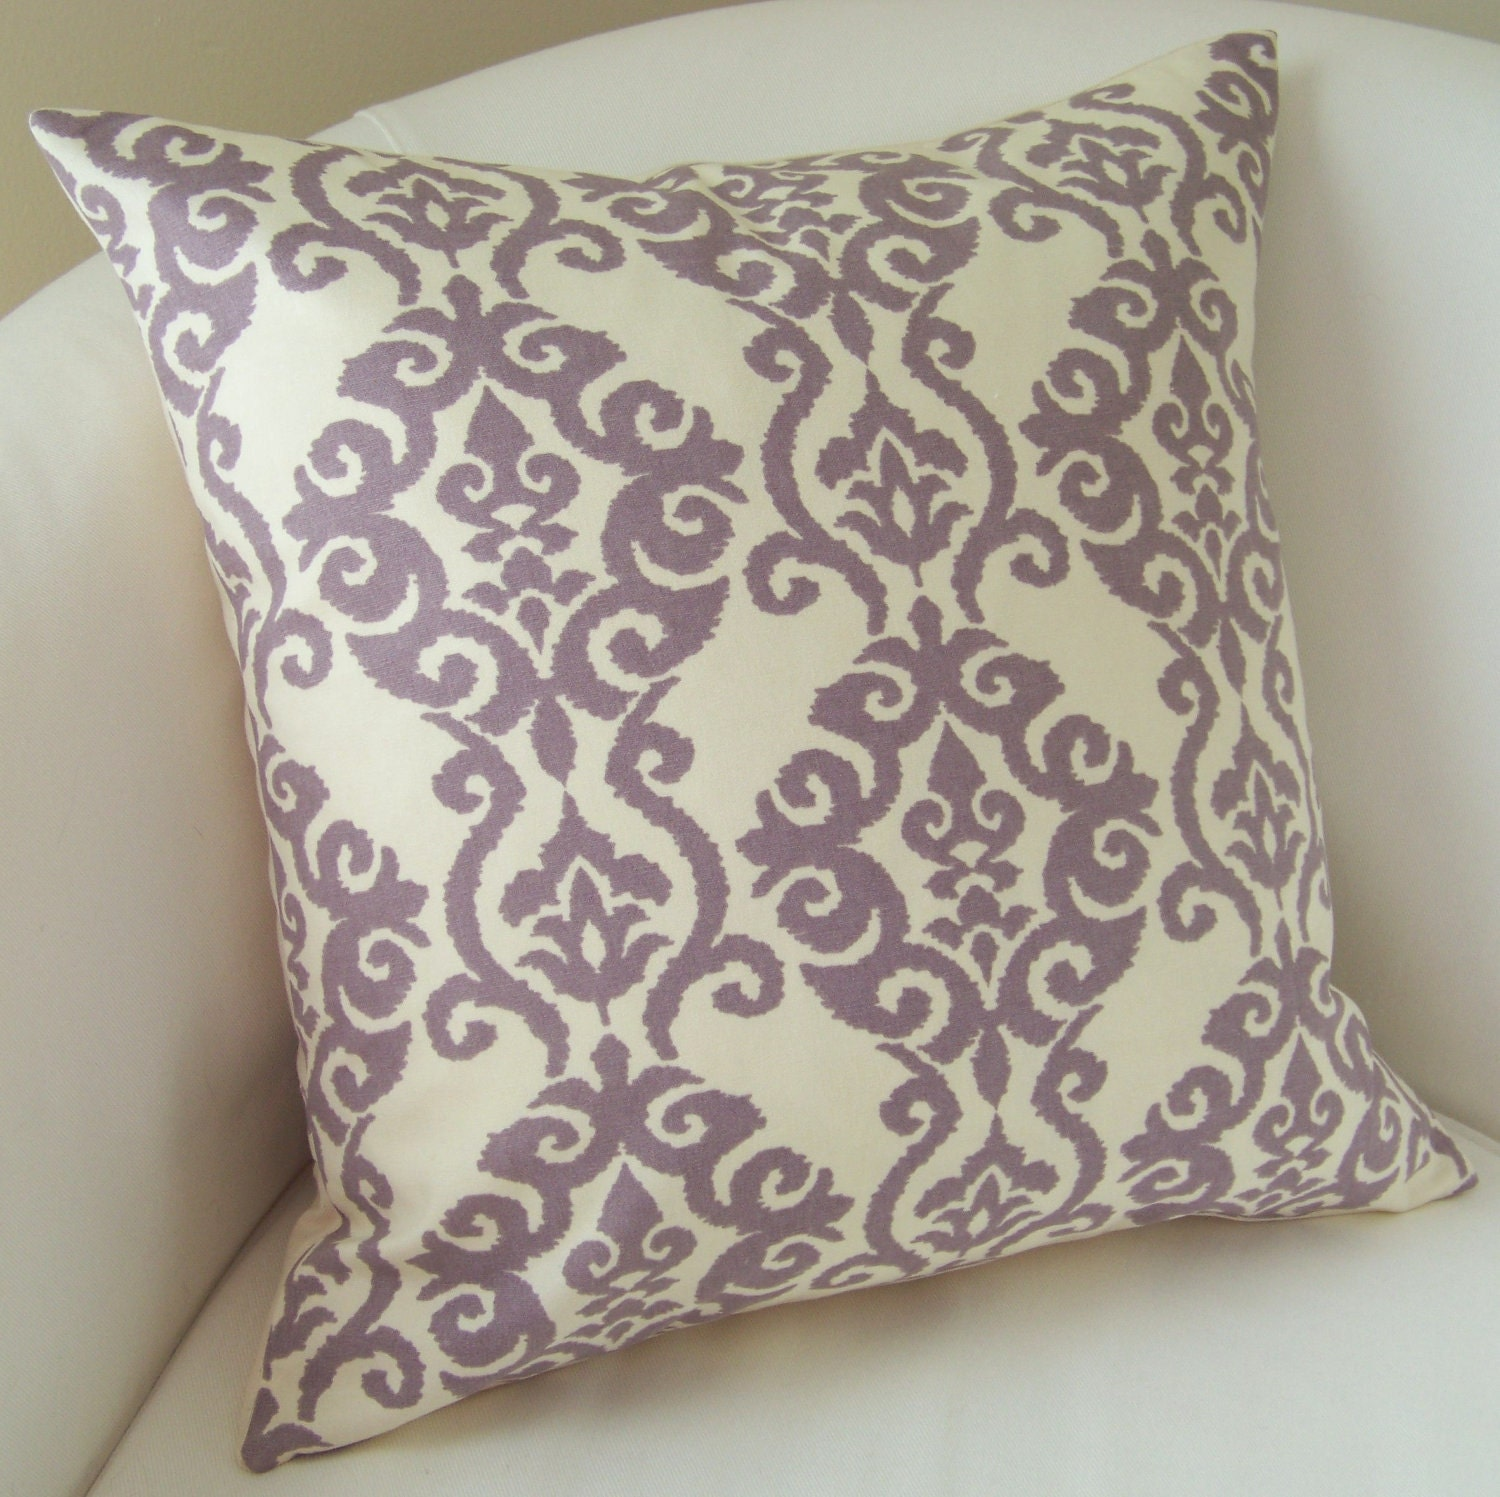 Pillow Throw Decor Etsy : Decorative Throw Pillow Cover Lilac Purple Pillow 18 by nestables